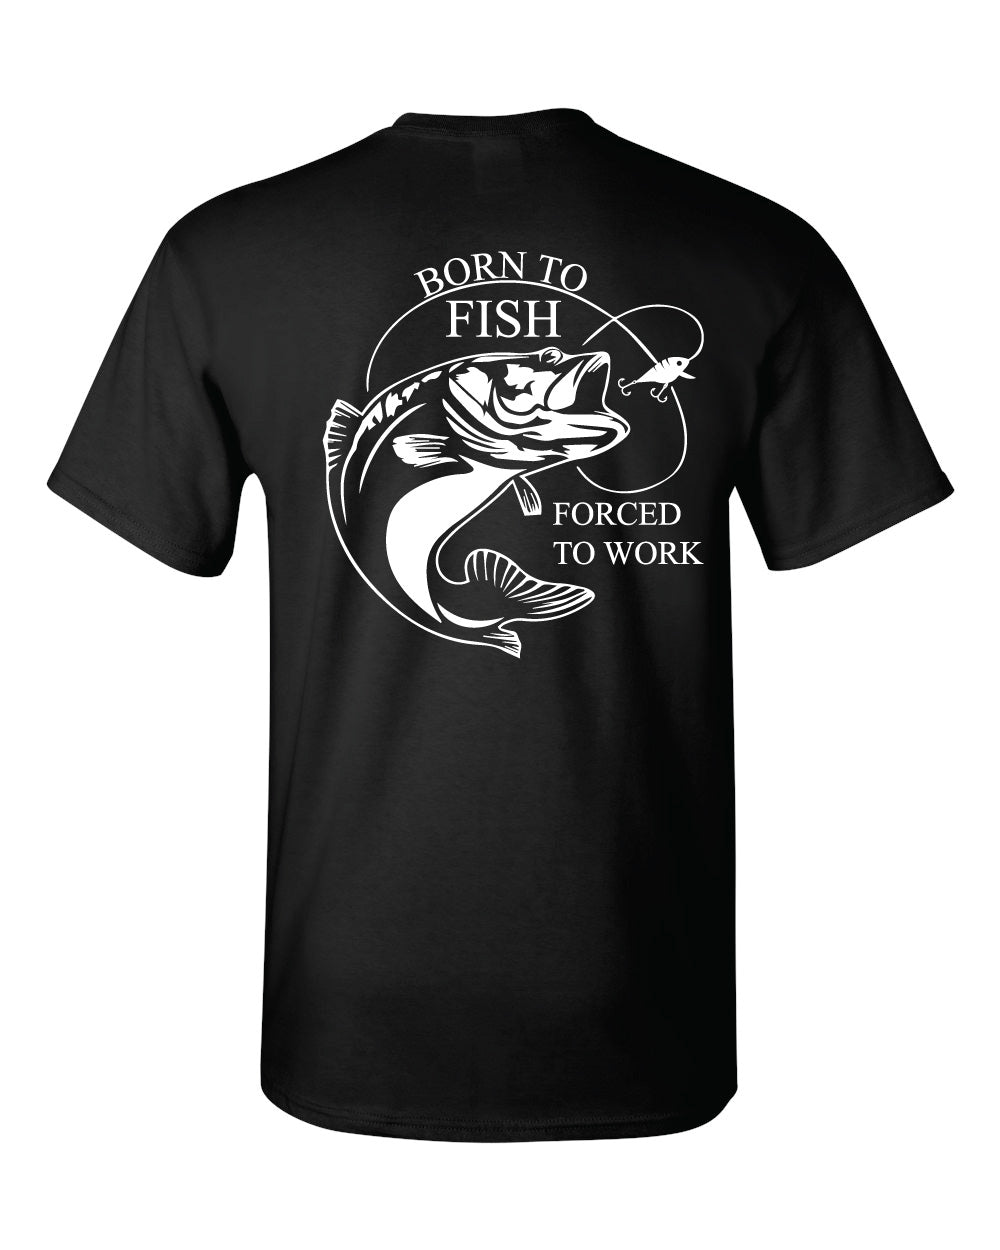 Born to Fish - Black Tshirt